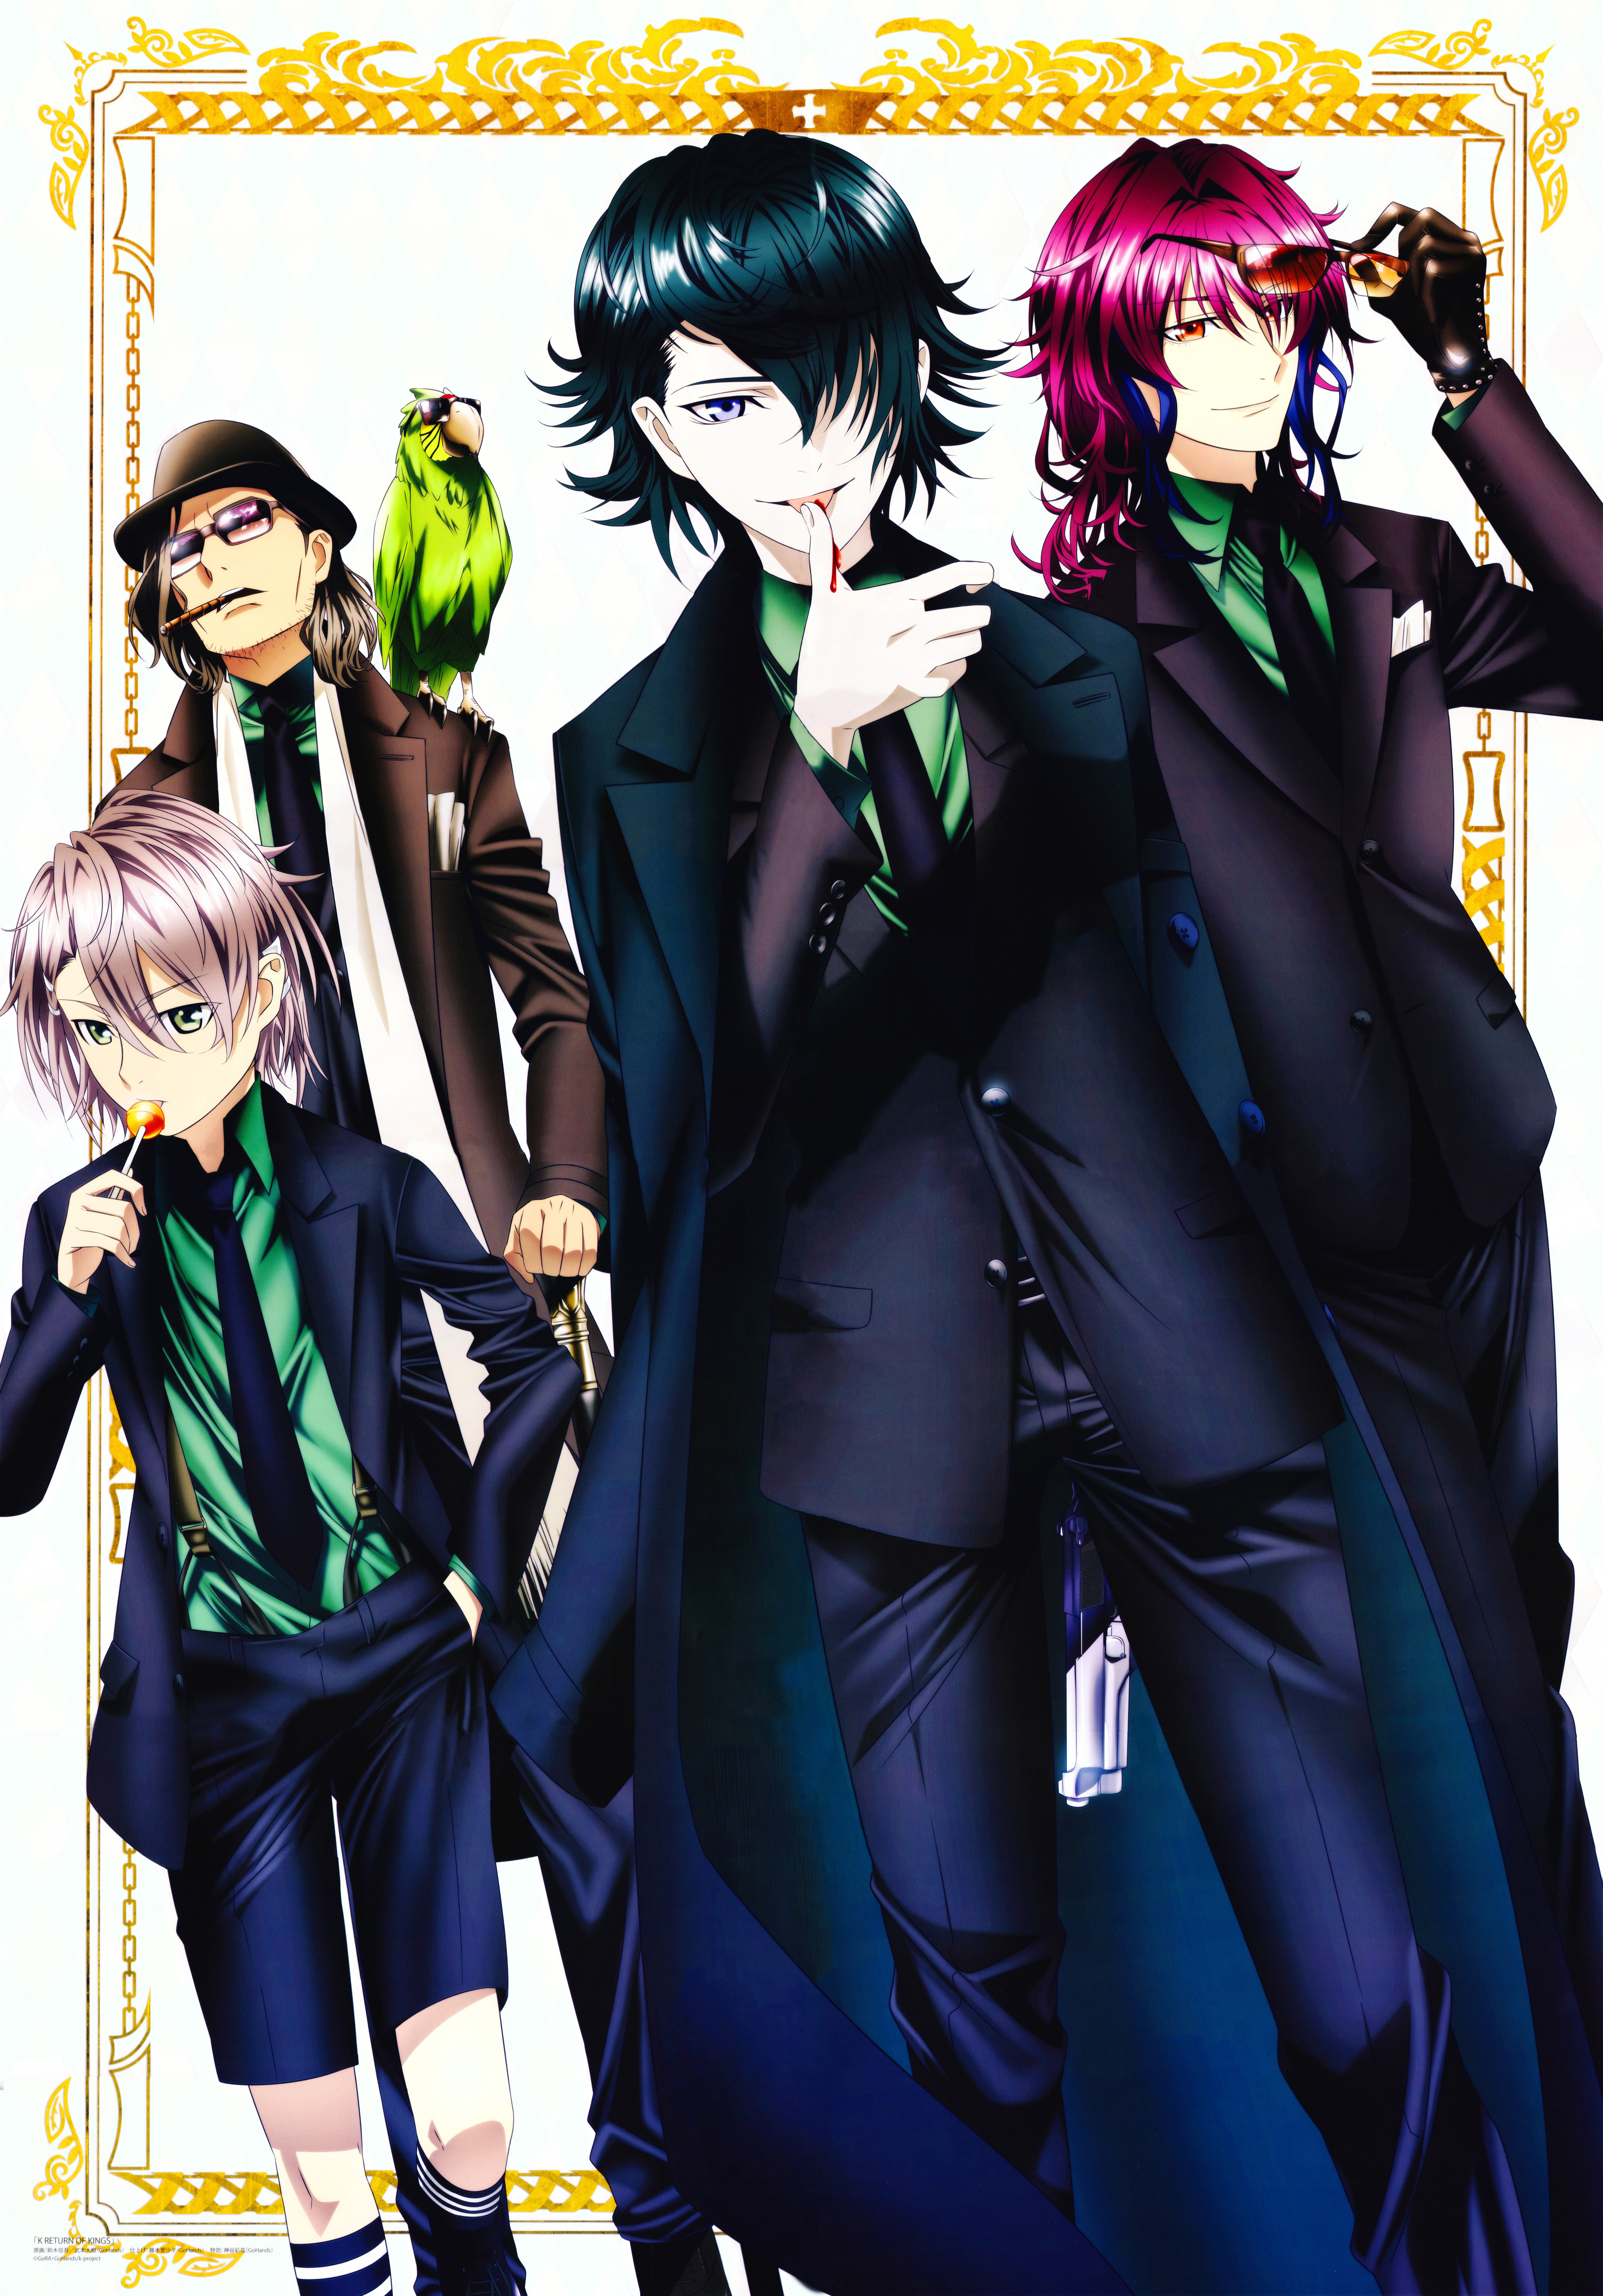 Image Result For Anime Villains Wallpaper